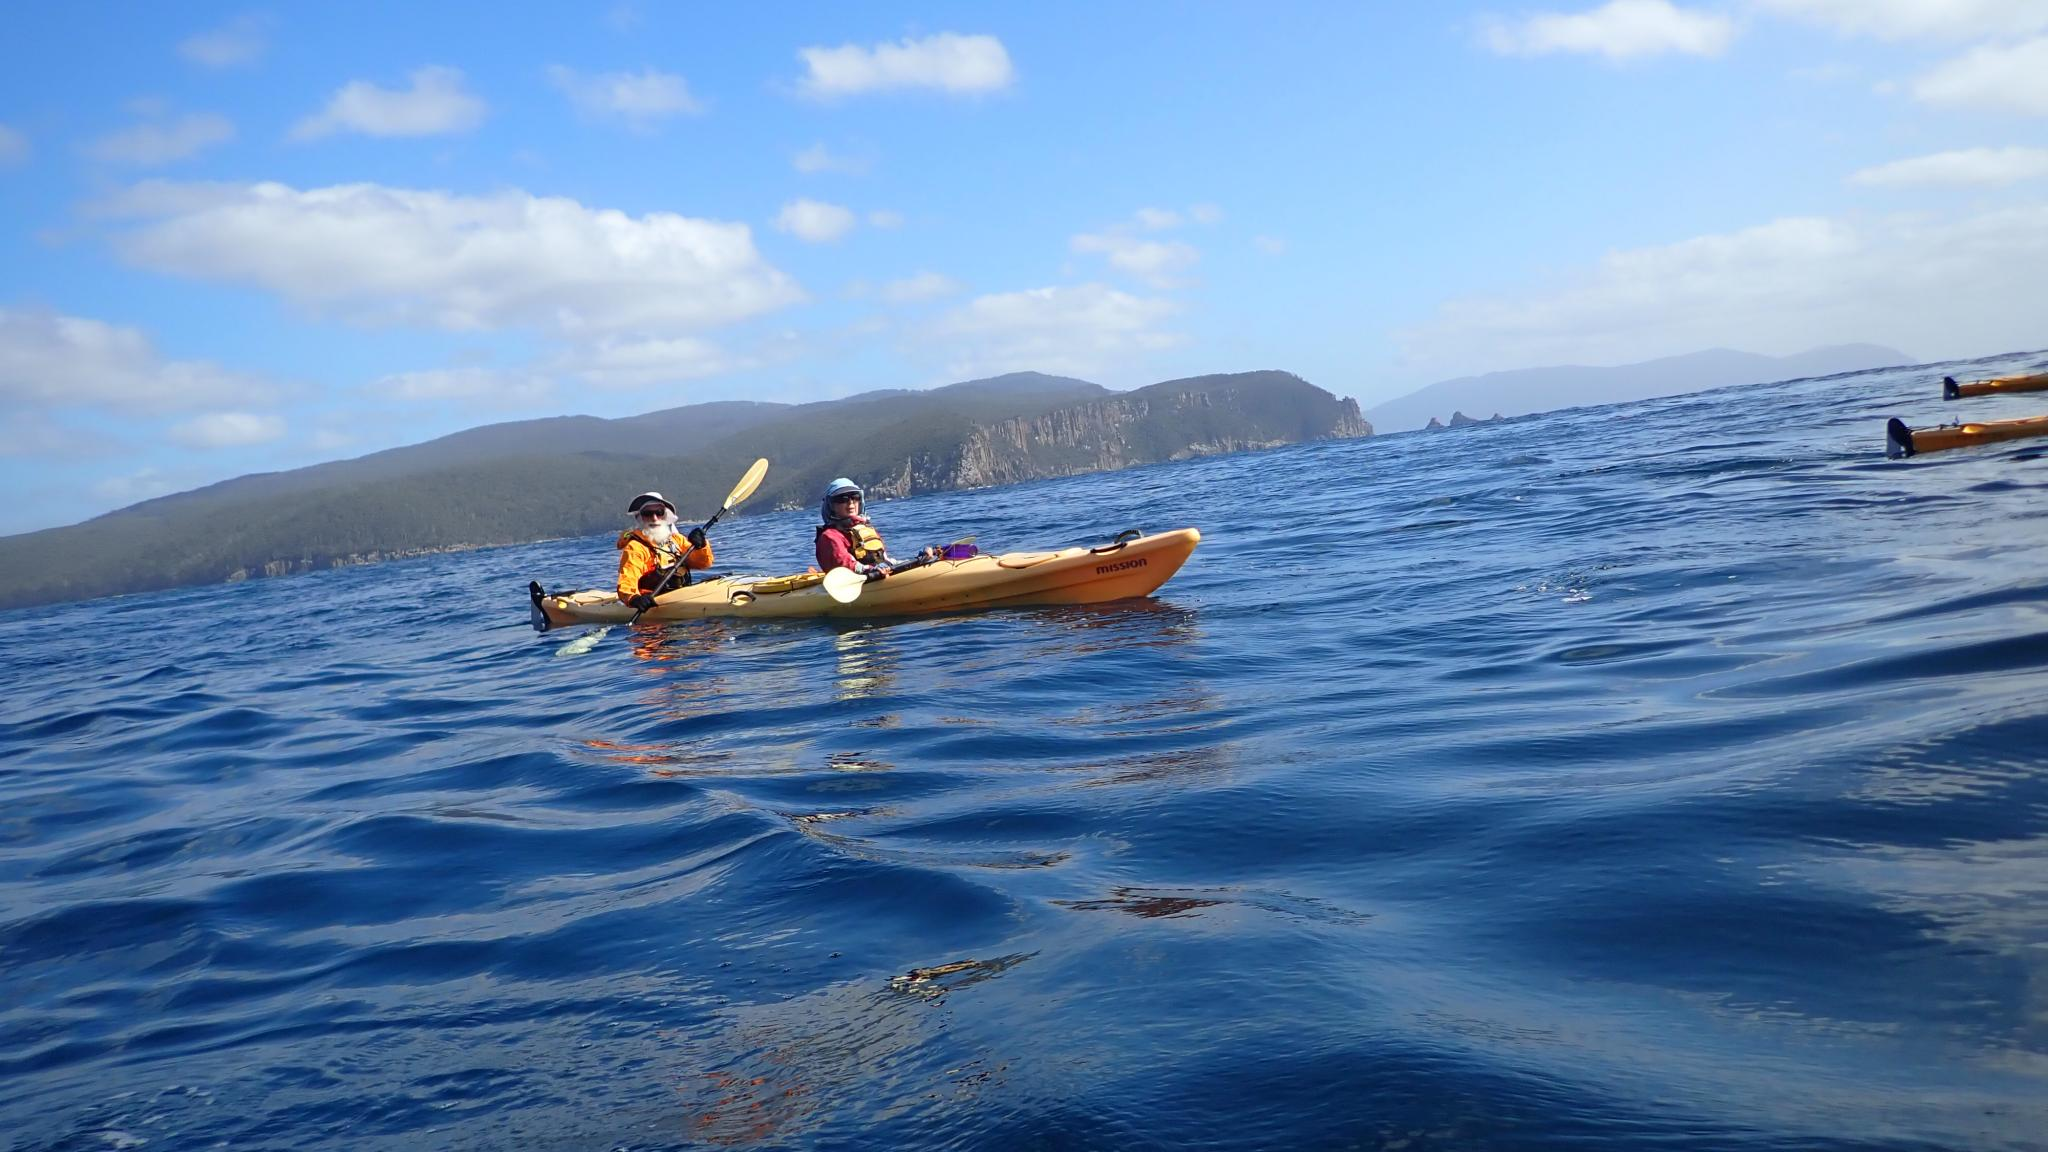 Adventures Tasmania - Multiday sea kayaking tour on Fortescue Bay, Tasman Peninsula